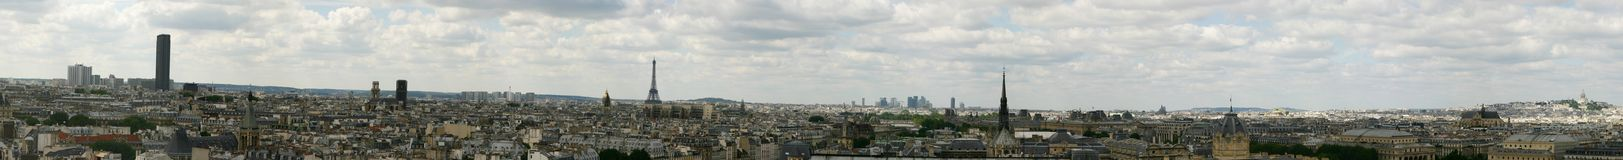 Paris-Panorama Stockfoto